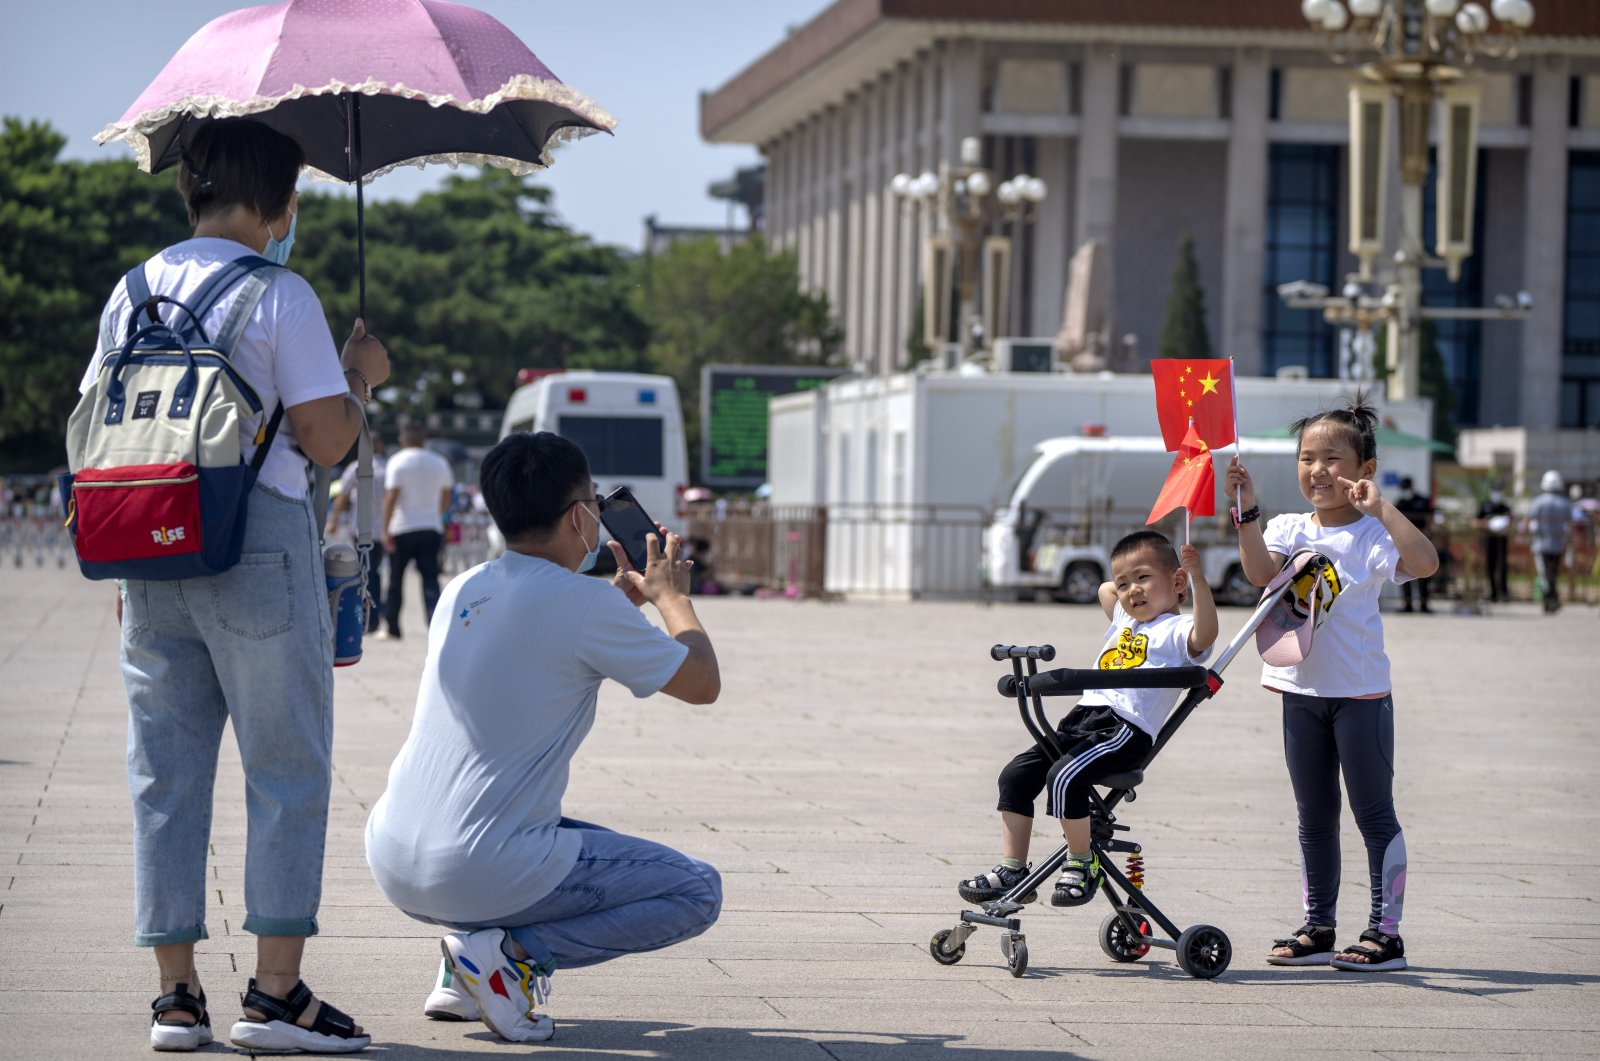 Children hold Chinese flags as they pose for a photo at Tiananmen Square in Beijing, June 22, 2021. (AP Photo)